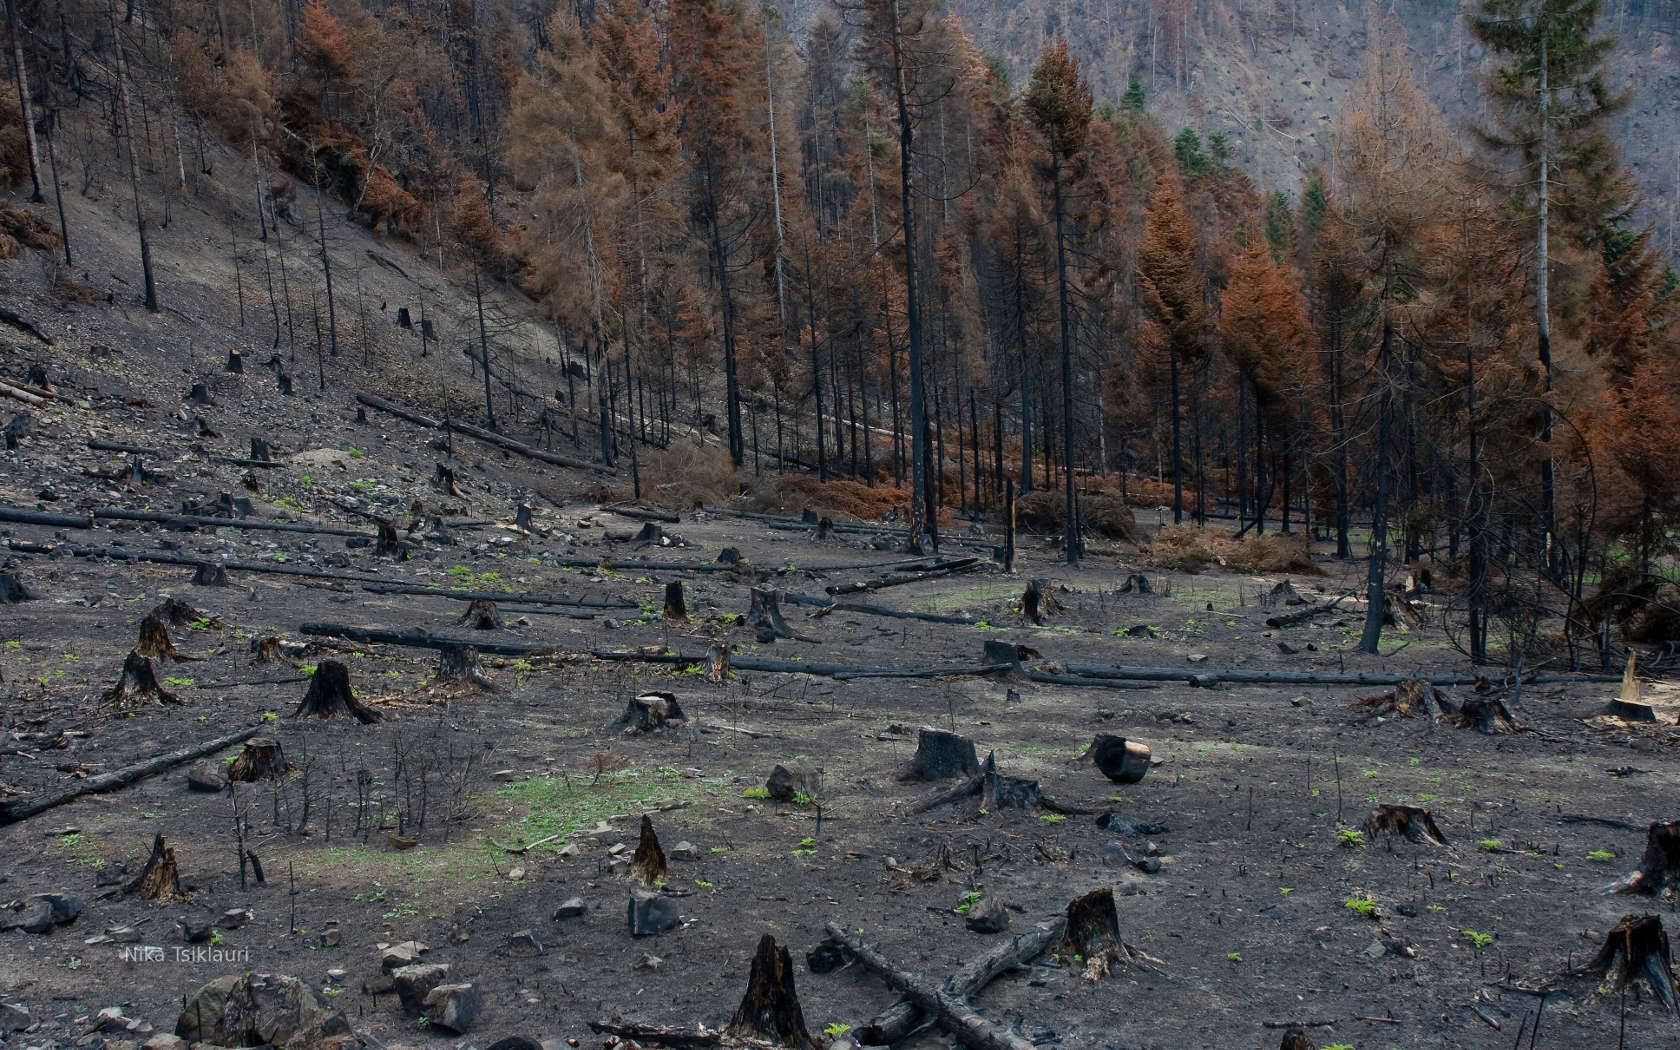 burned_forest_of_borjomi_1680x1050.jpg